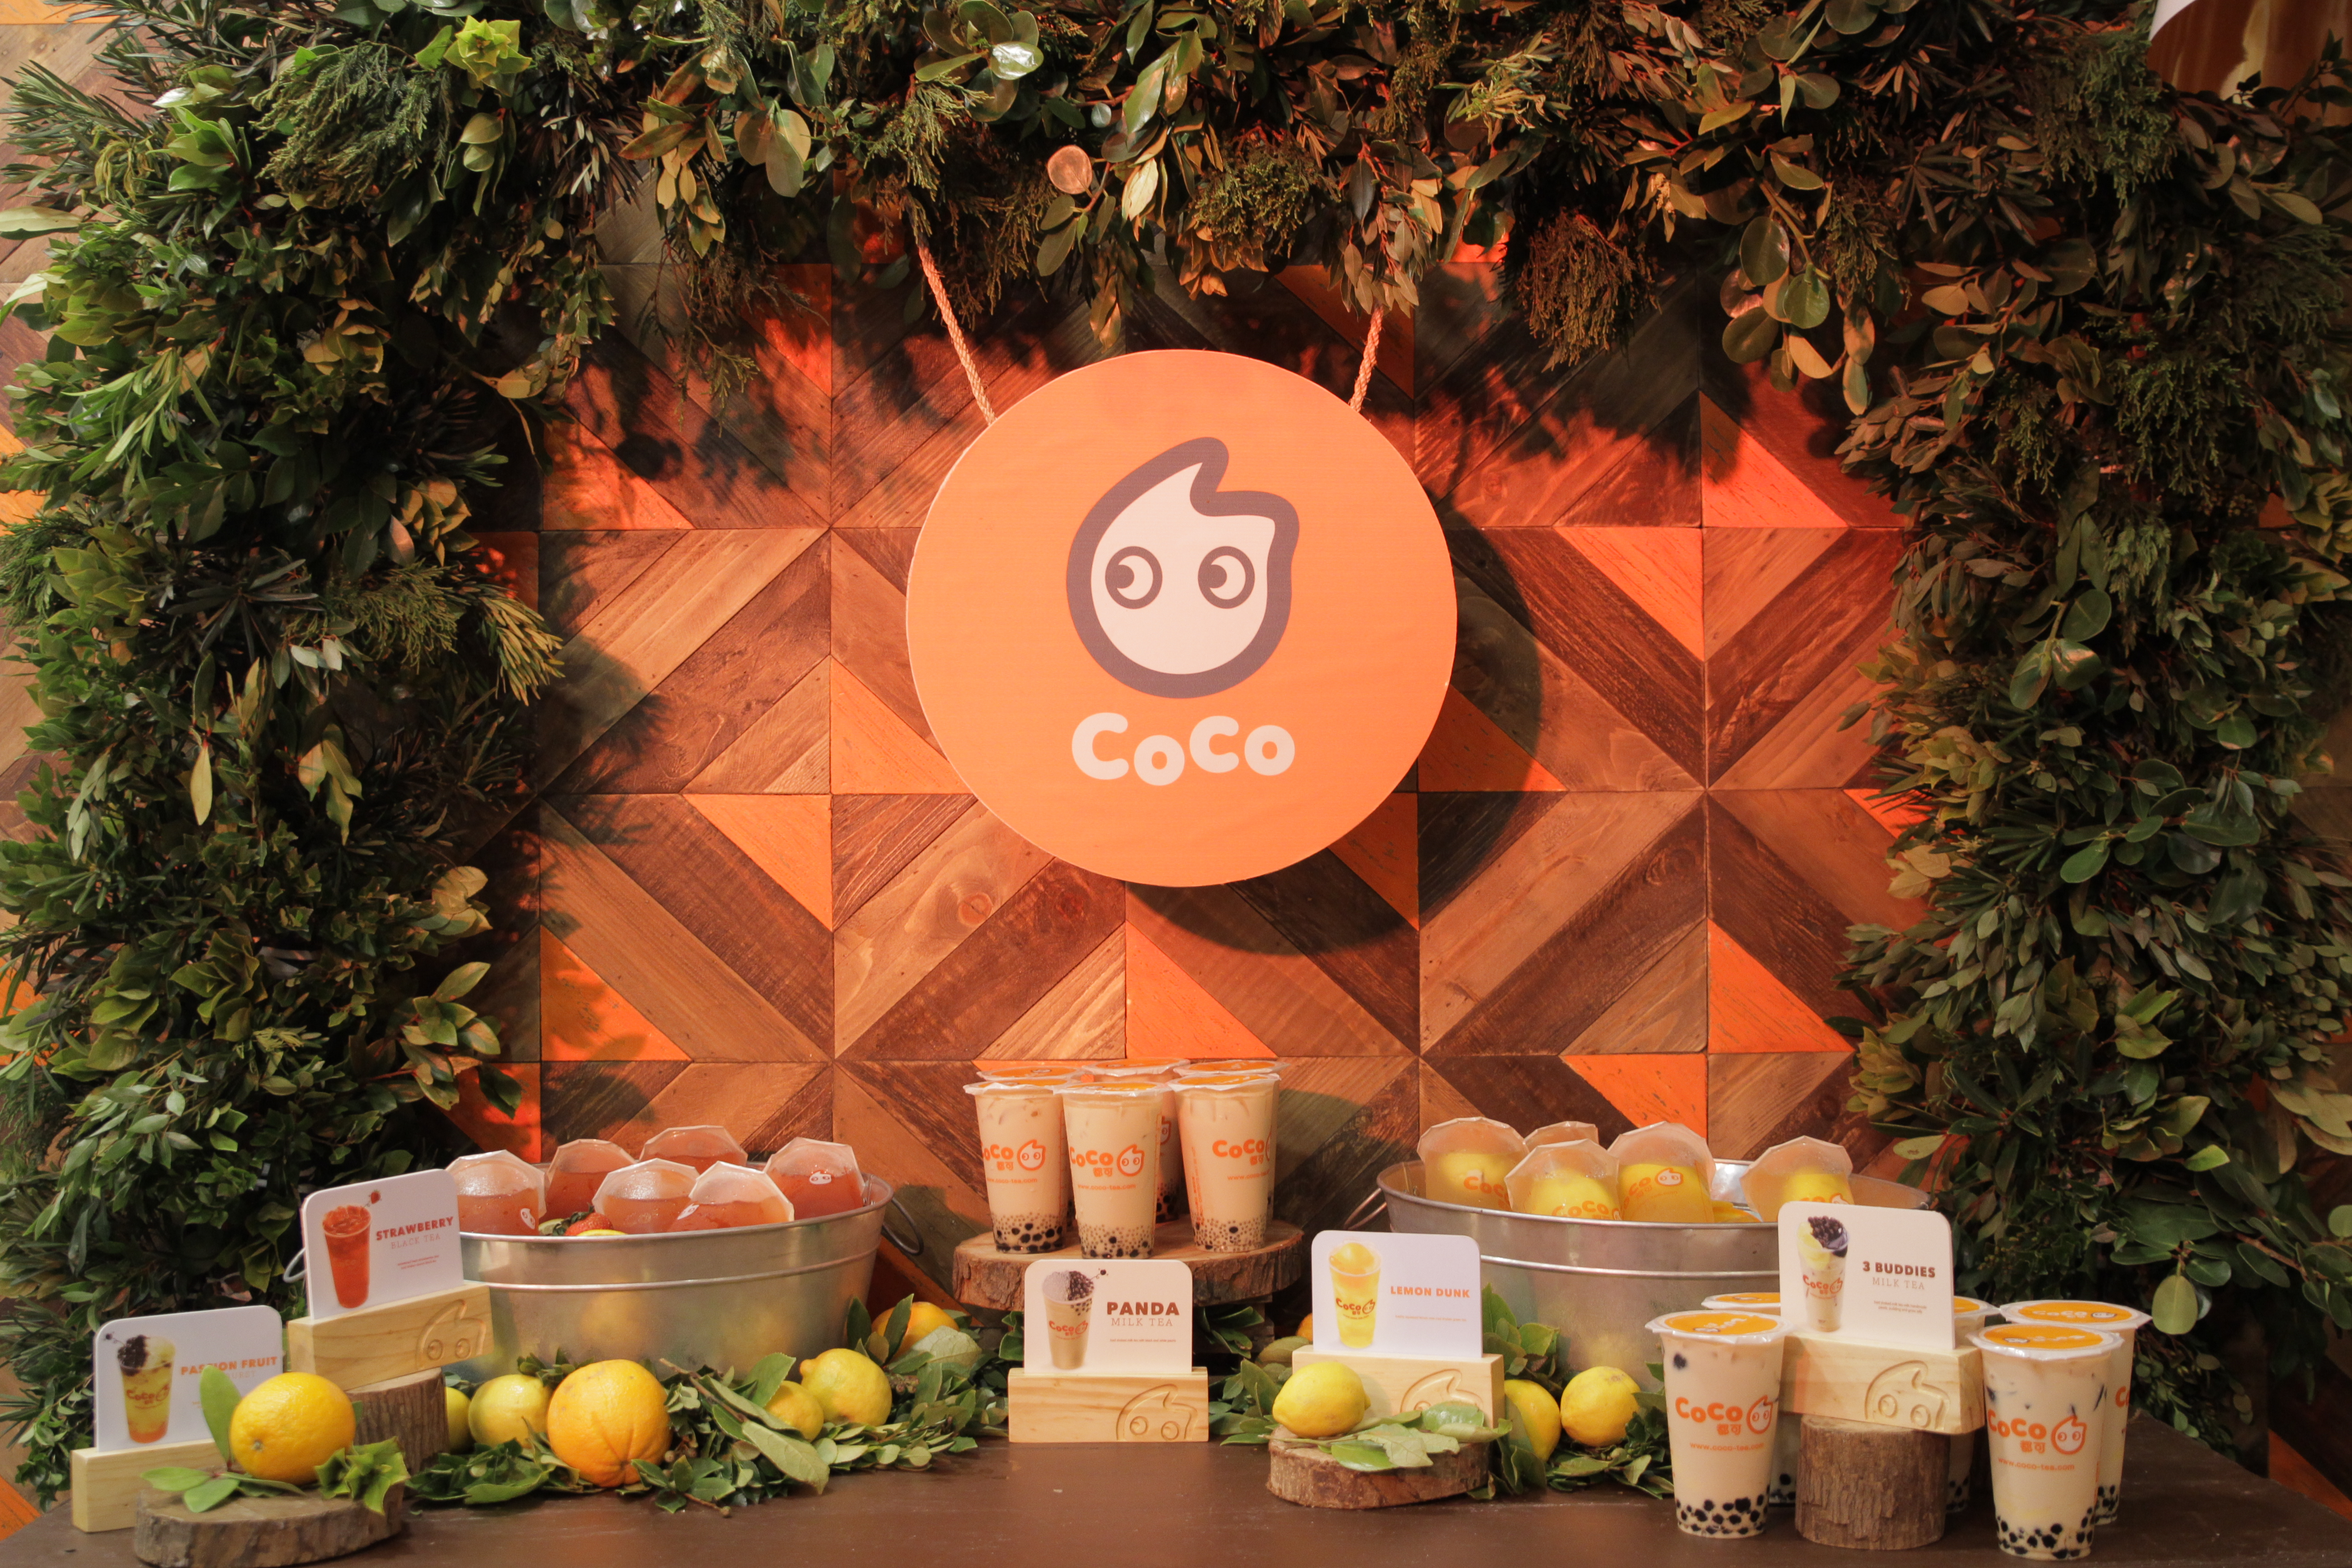 20 Years of Freshness: Here are 4 Reasons Why You Should Try CoCo